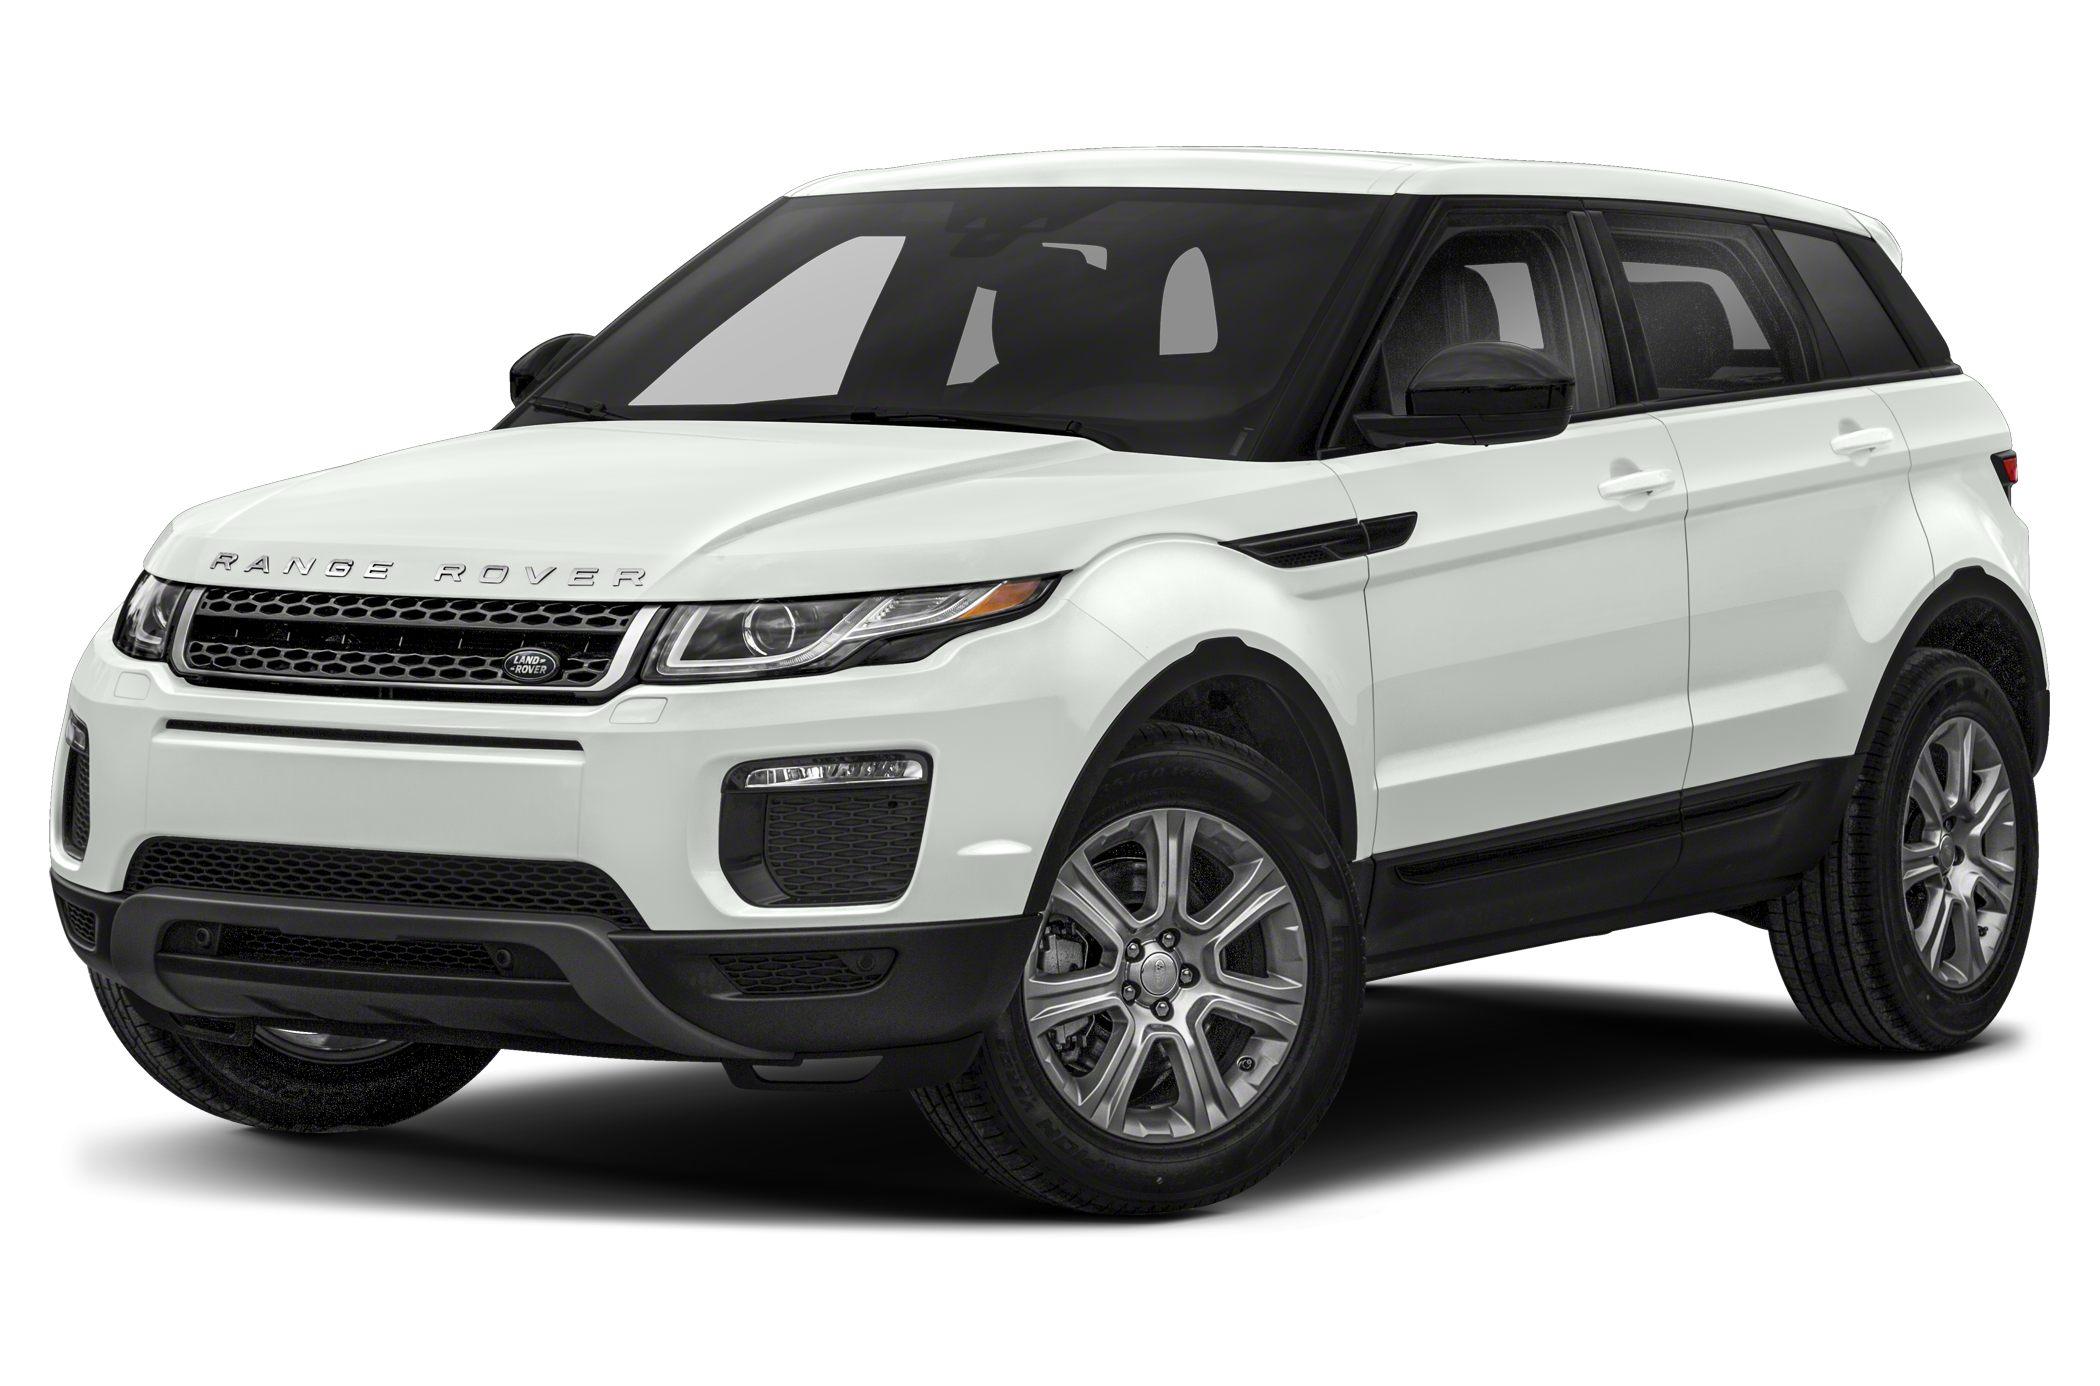 2018 Land Rover Range Rover Evoque Specs Safety Rating Mpg